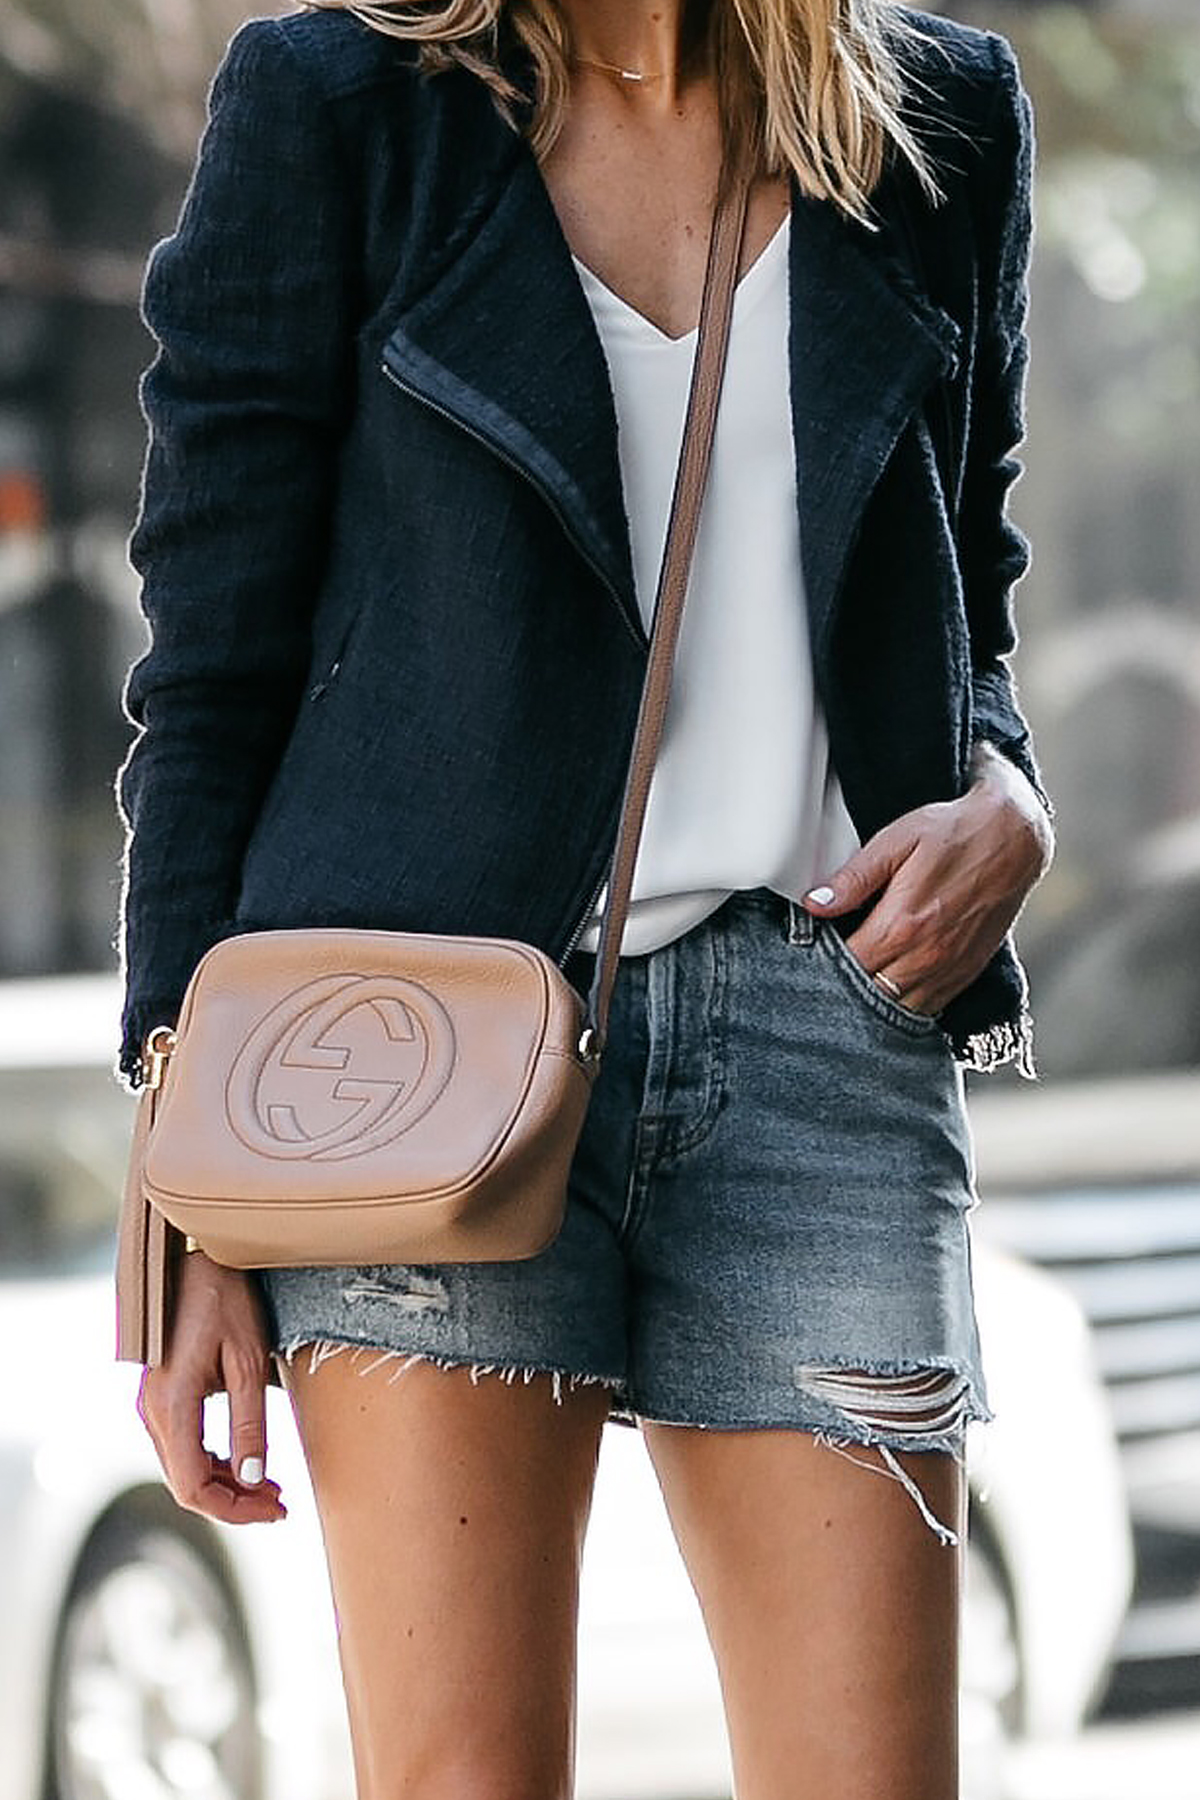 Nordstrom Anniversary Sale Navy Tweed Jacket White Cami Topshop Denim Ripped Shorts Outfit Gucci Soho Handbag Fashion Jackson Dallas Blogger Fashion Blogger Street Style